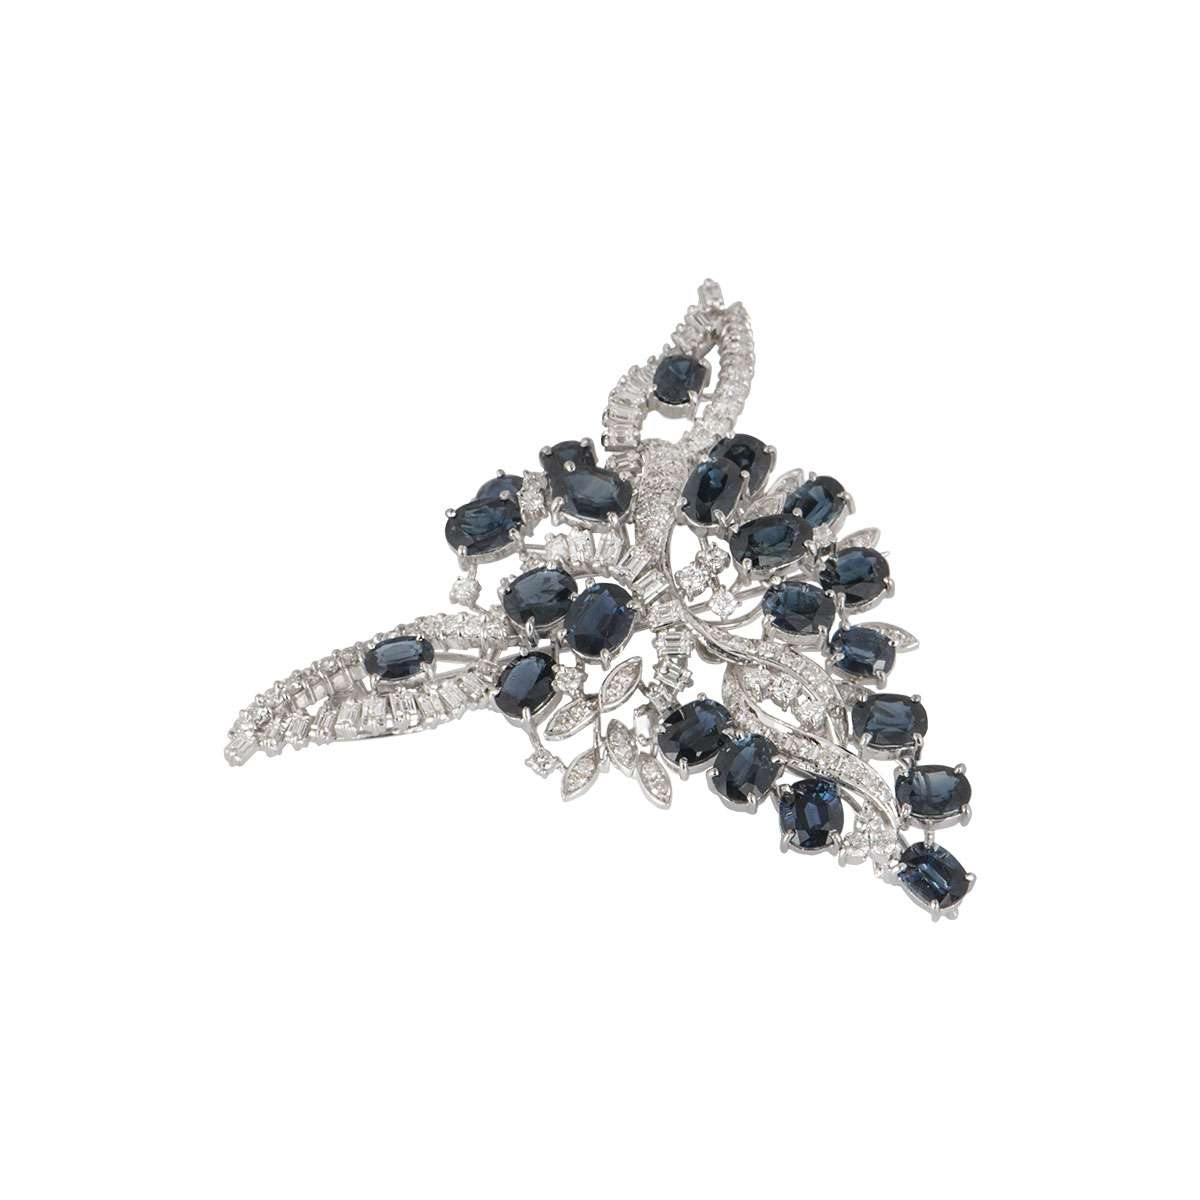 White Gold Sapphire and Diamond Brooch